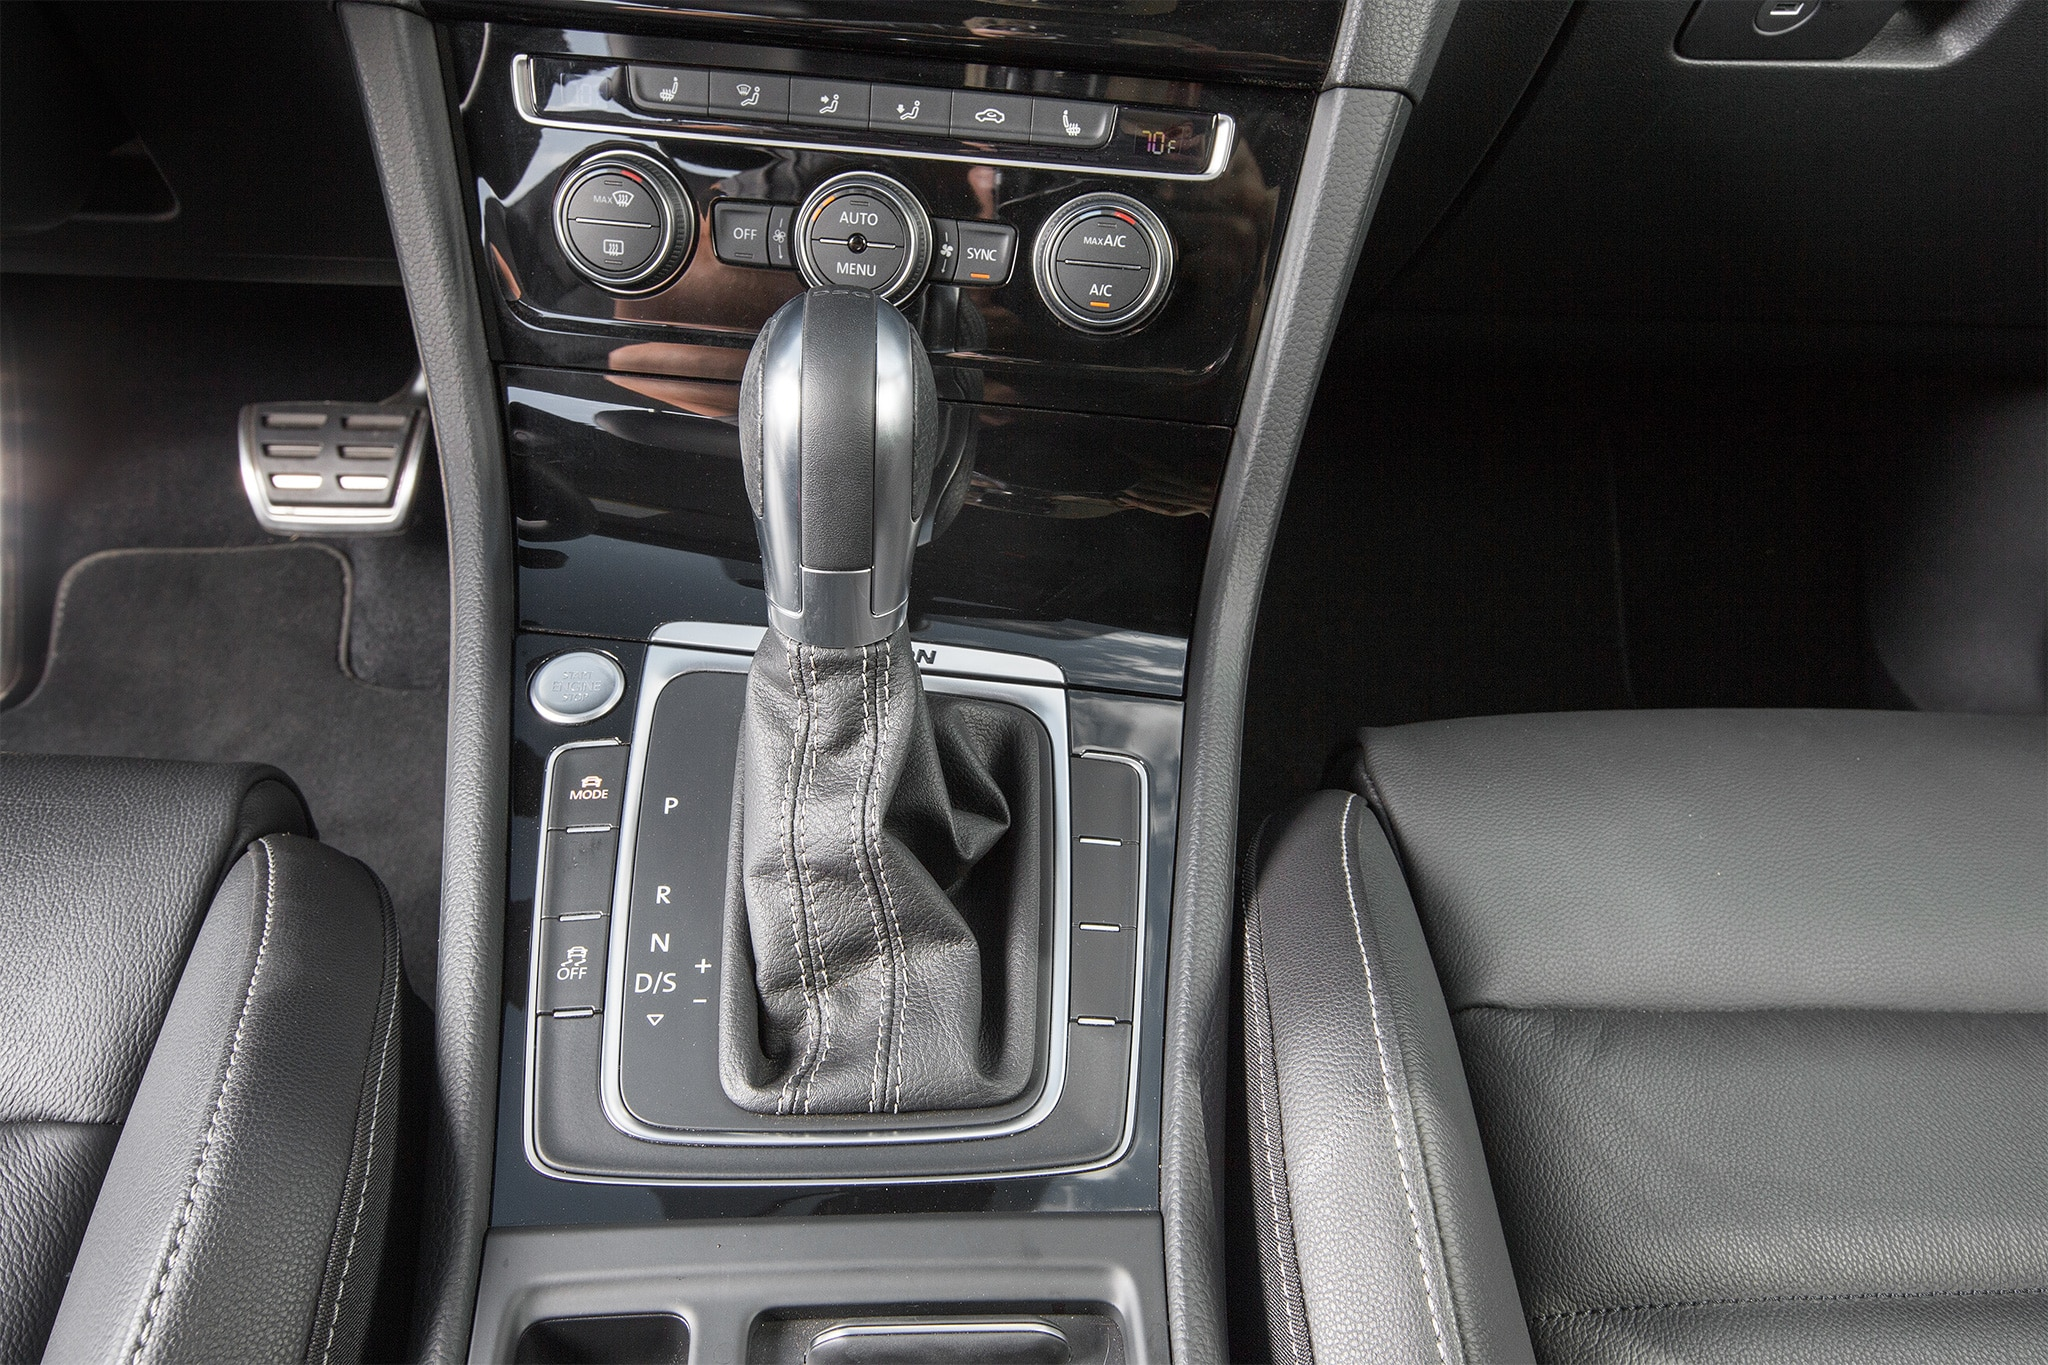 2016 Volkswagen Golf R gear shifter